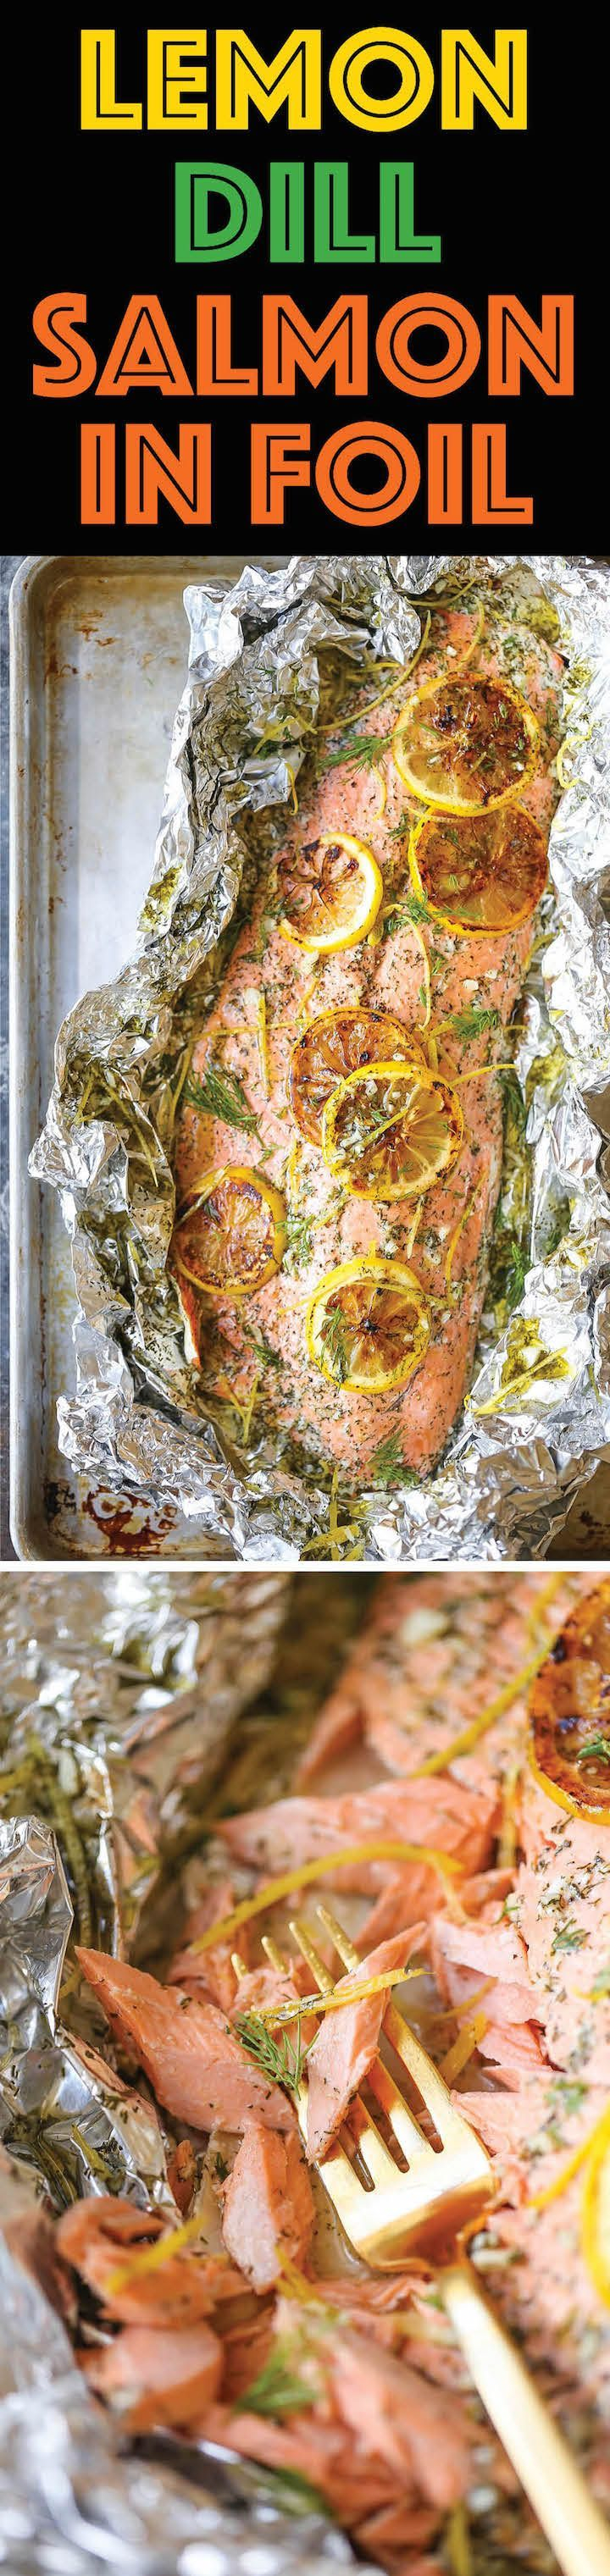 Lemon Dill Salmon in Foil - Seriously dead-simple salmon cooked right in foil! 10 minutes prep. No clean-up! And you know lemon-dill flavors are THE BEST! (Baking Salmon In Foil)